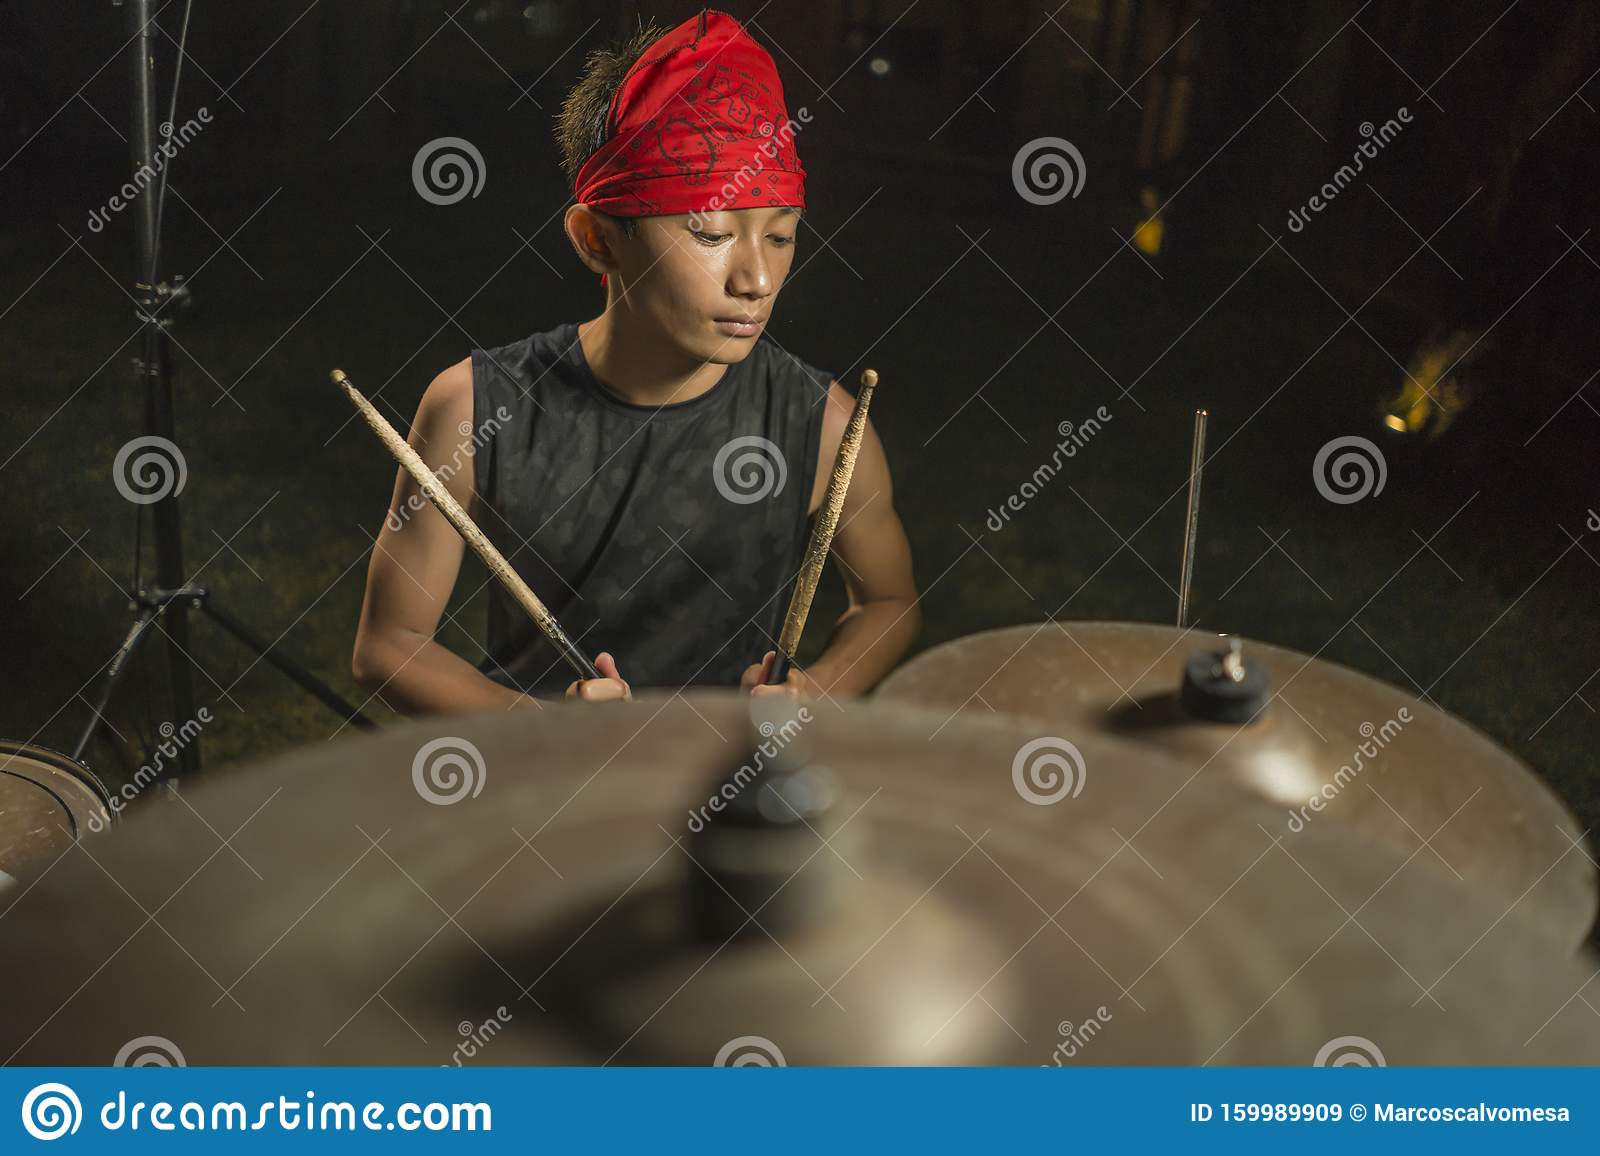 how to play we are young on the drums